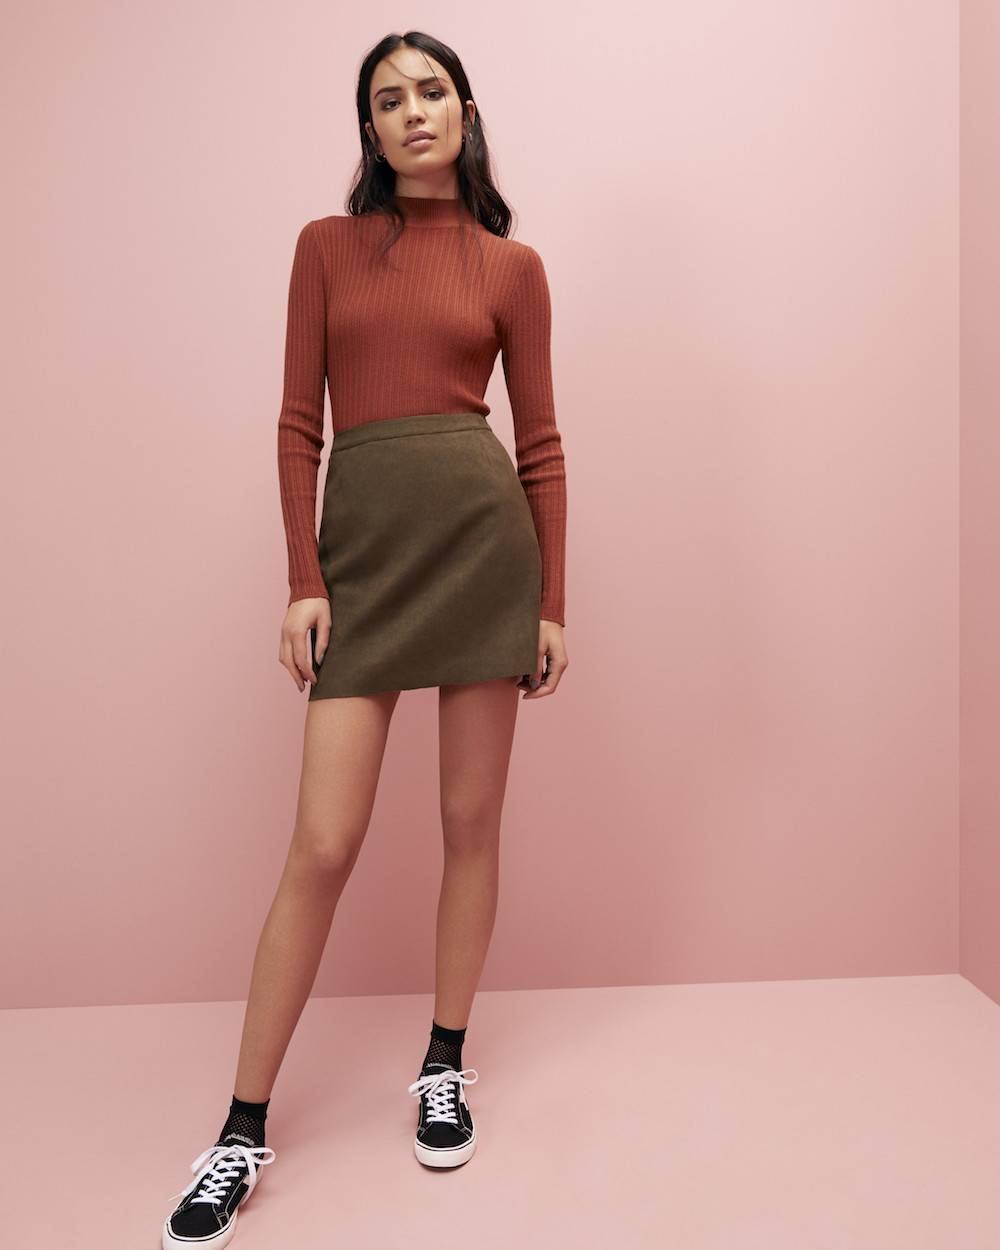 335003_19.04.2017_Primark_AW_New_Value_Womens_JW_RBO_D8_SUEDESKIRT_001